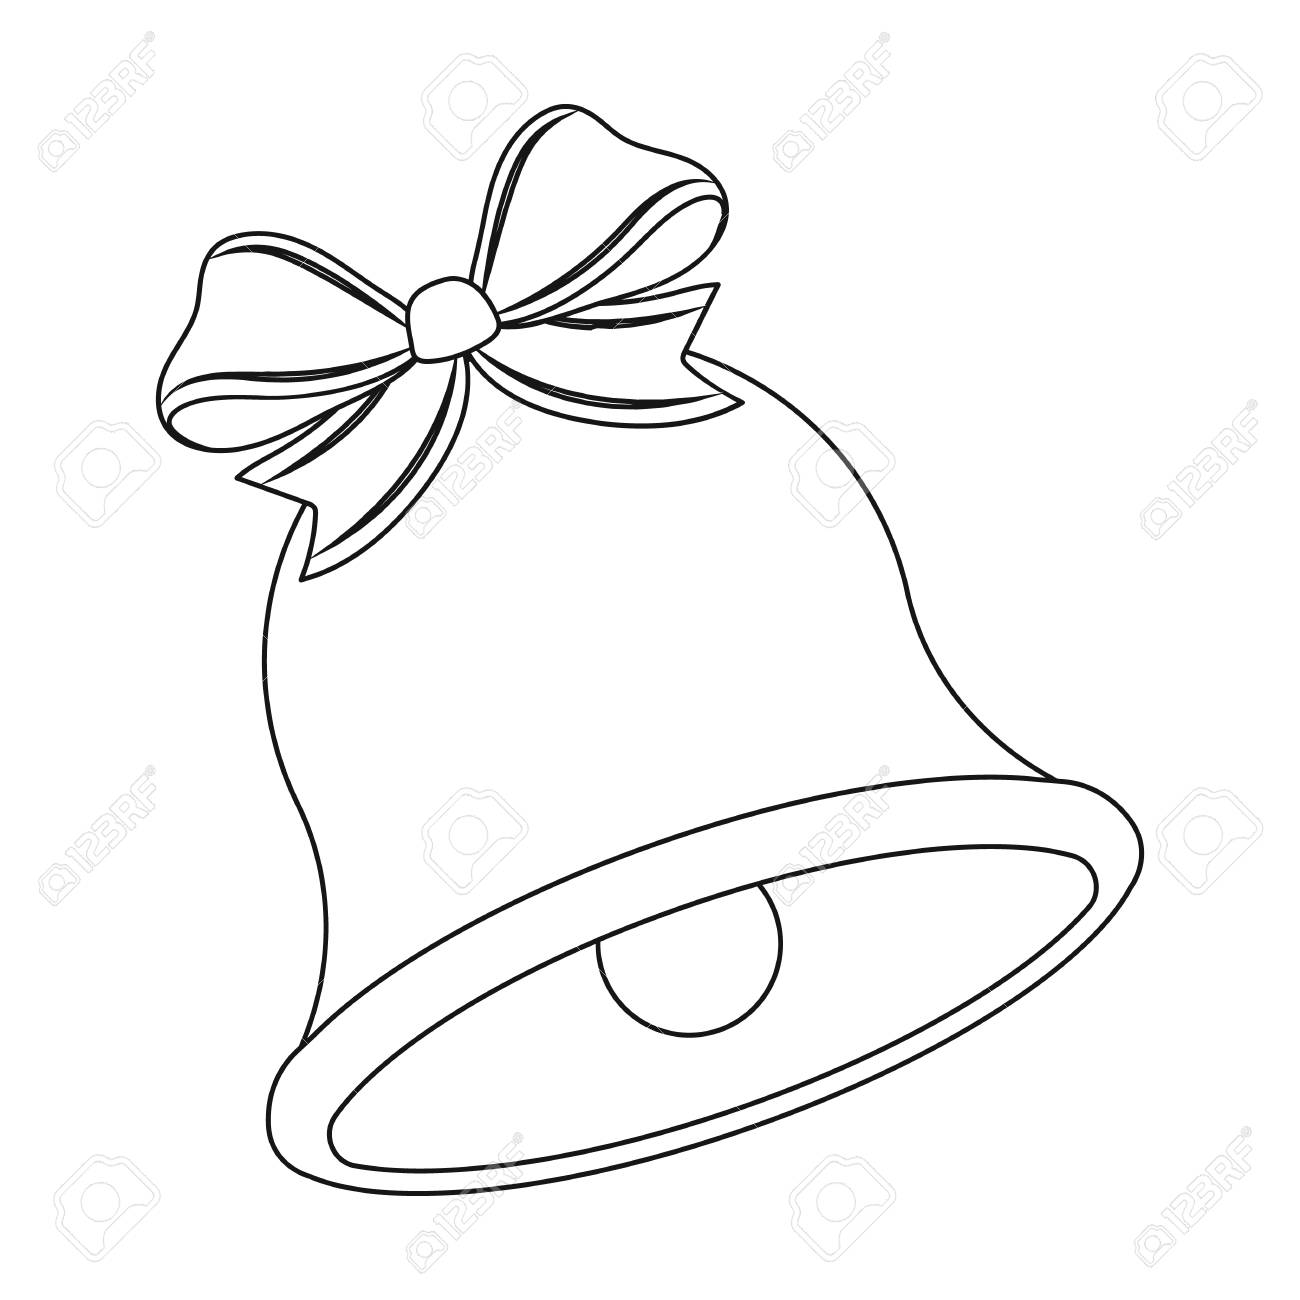 Christmas Bell Images.Christmas Bell Single Icon In Outline Style For Design Christmas